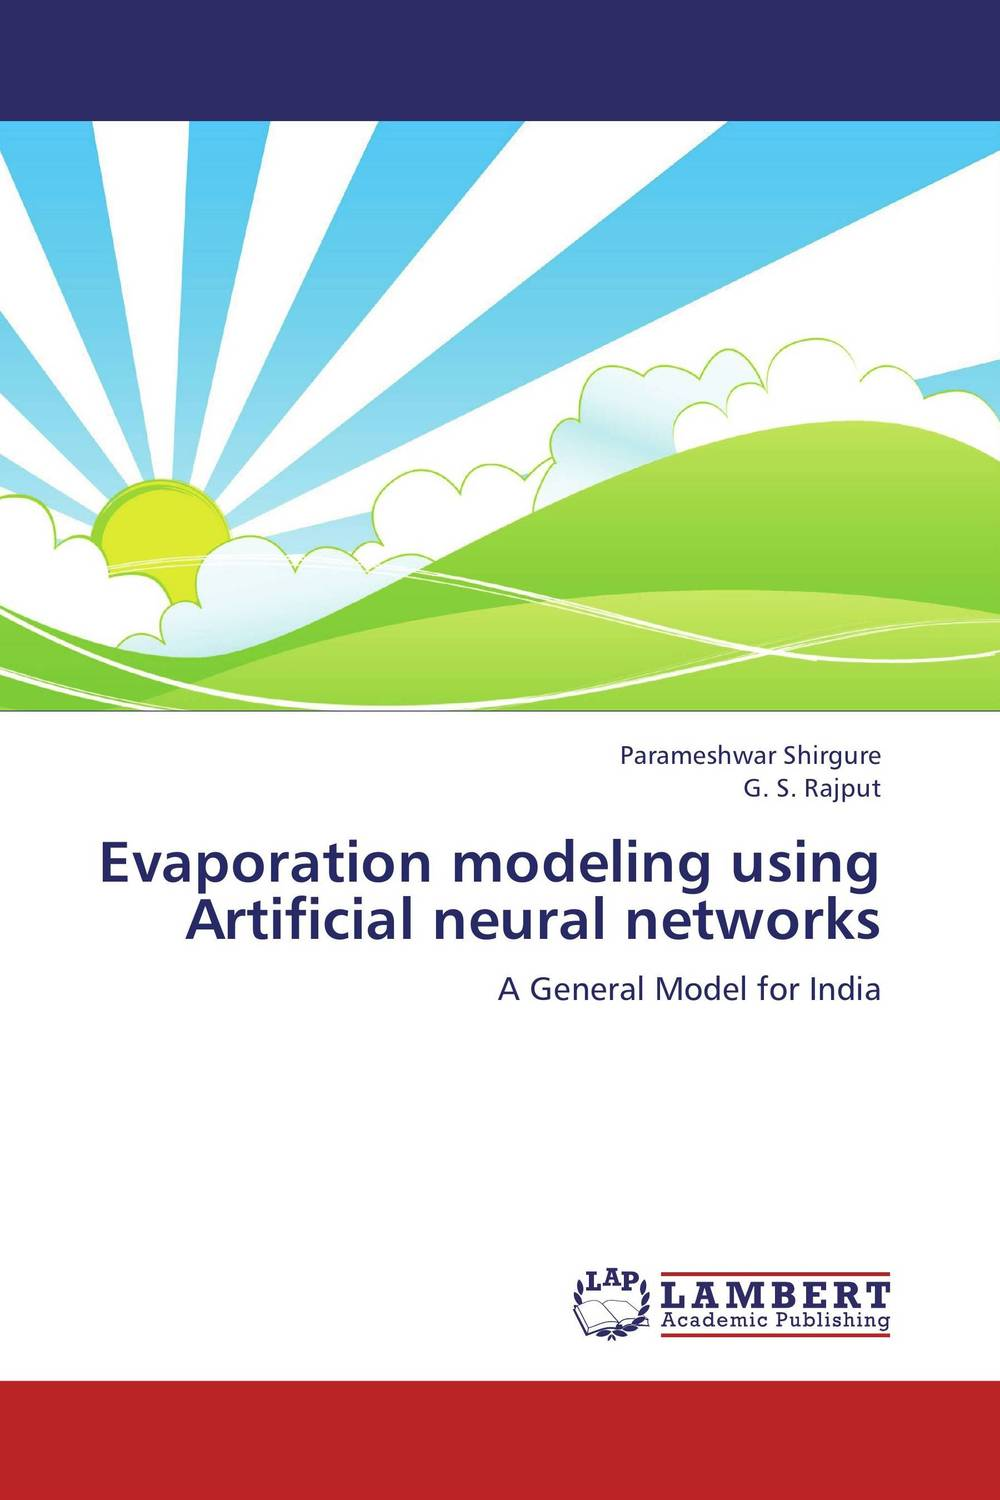 Evaporation modeling using Artificial neural networks modeling and evaluation of networks on chip